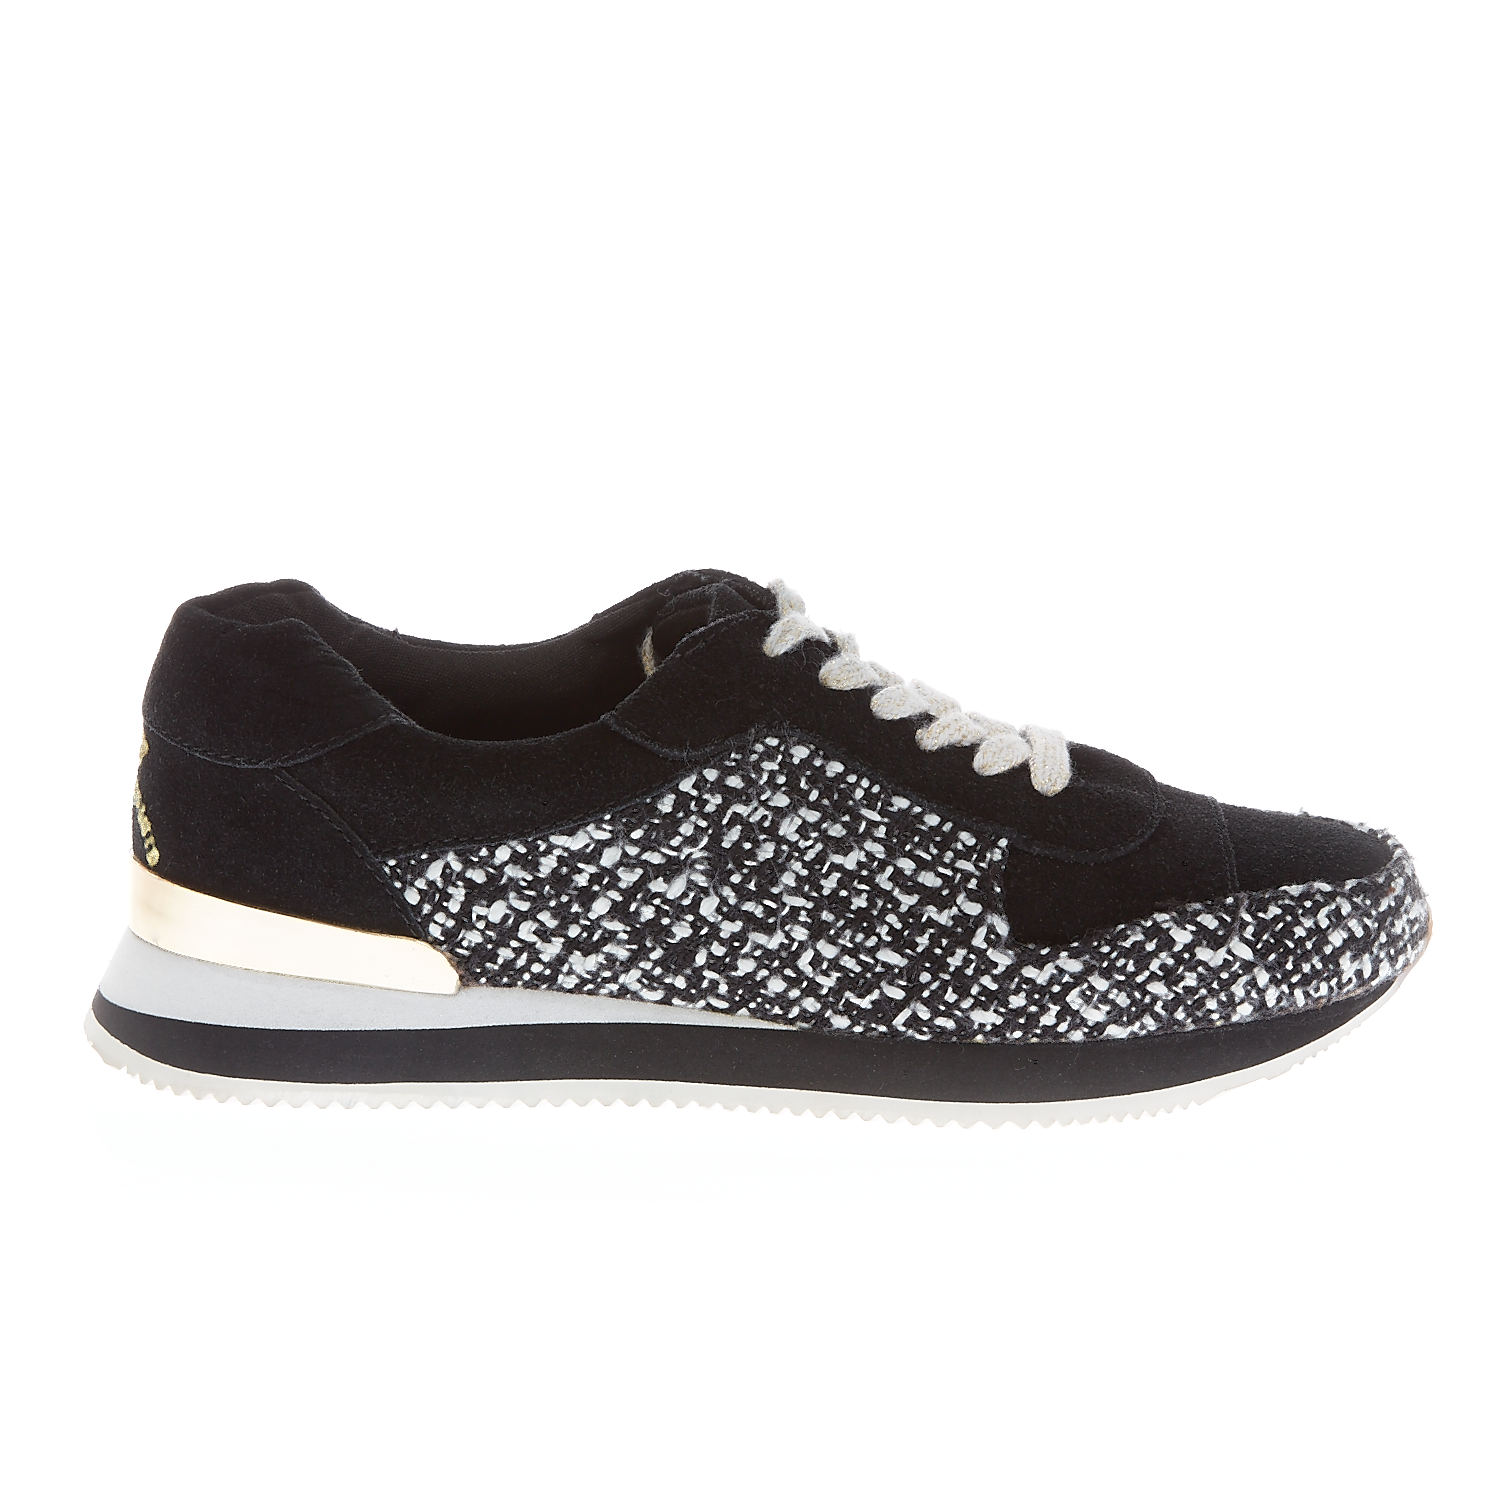 JUICY COUTURE – Γυναικεία sneakers Juicy Couture μαύρα